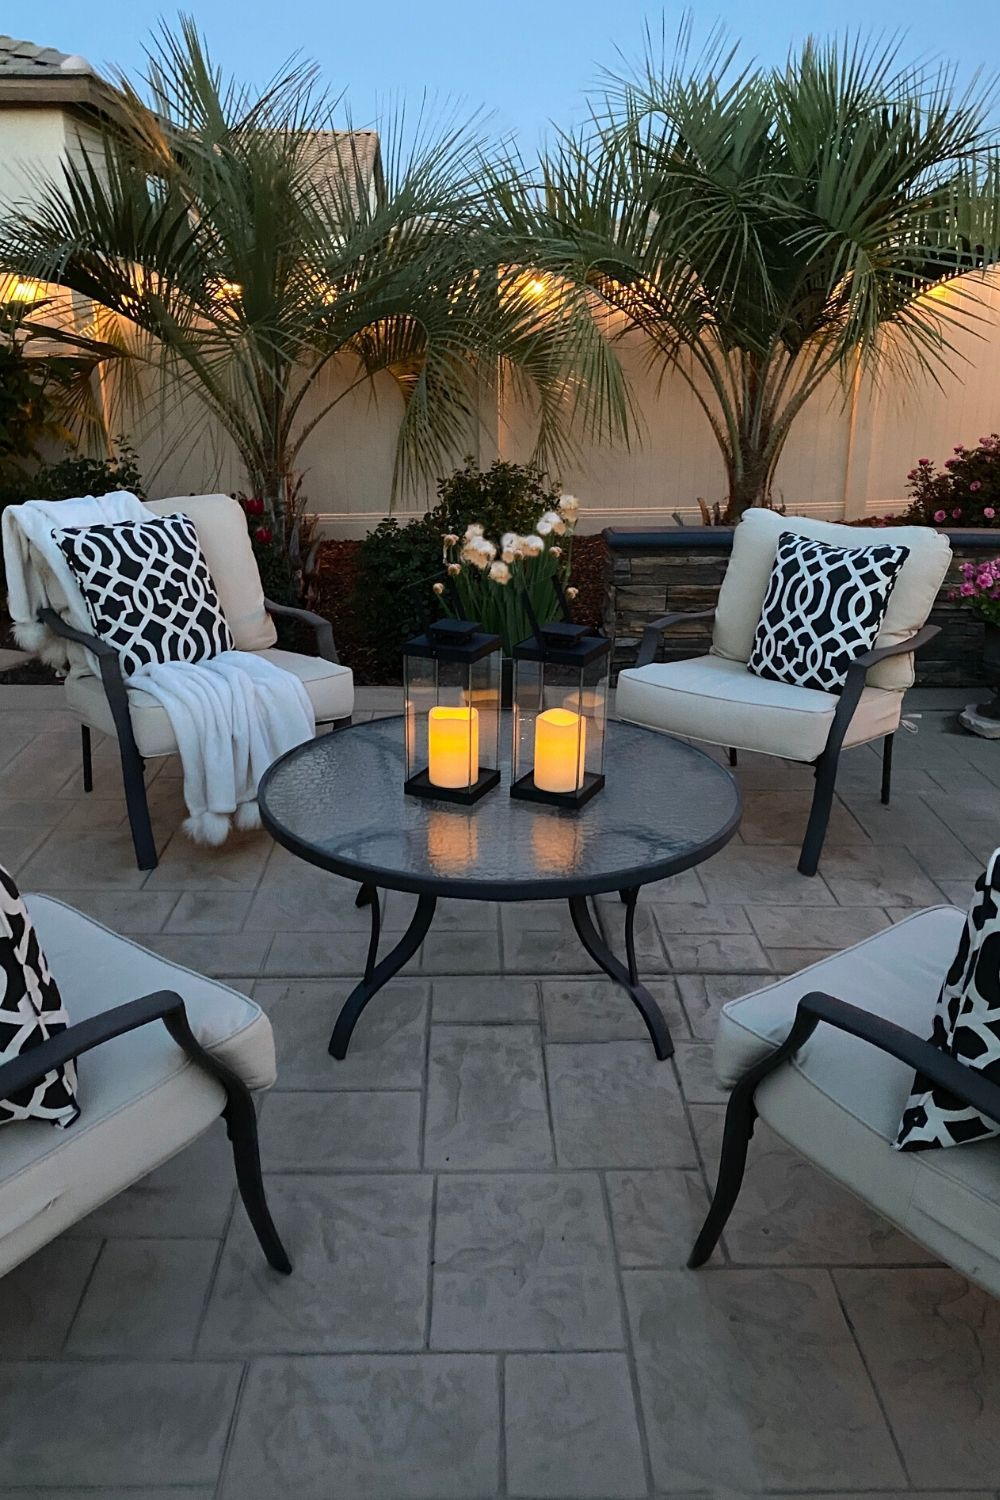 Outdoor Lanterns for Your Backyard Patio